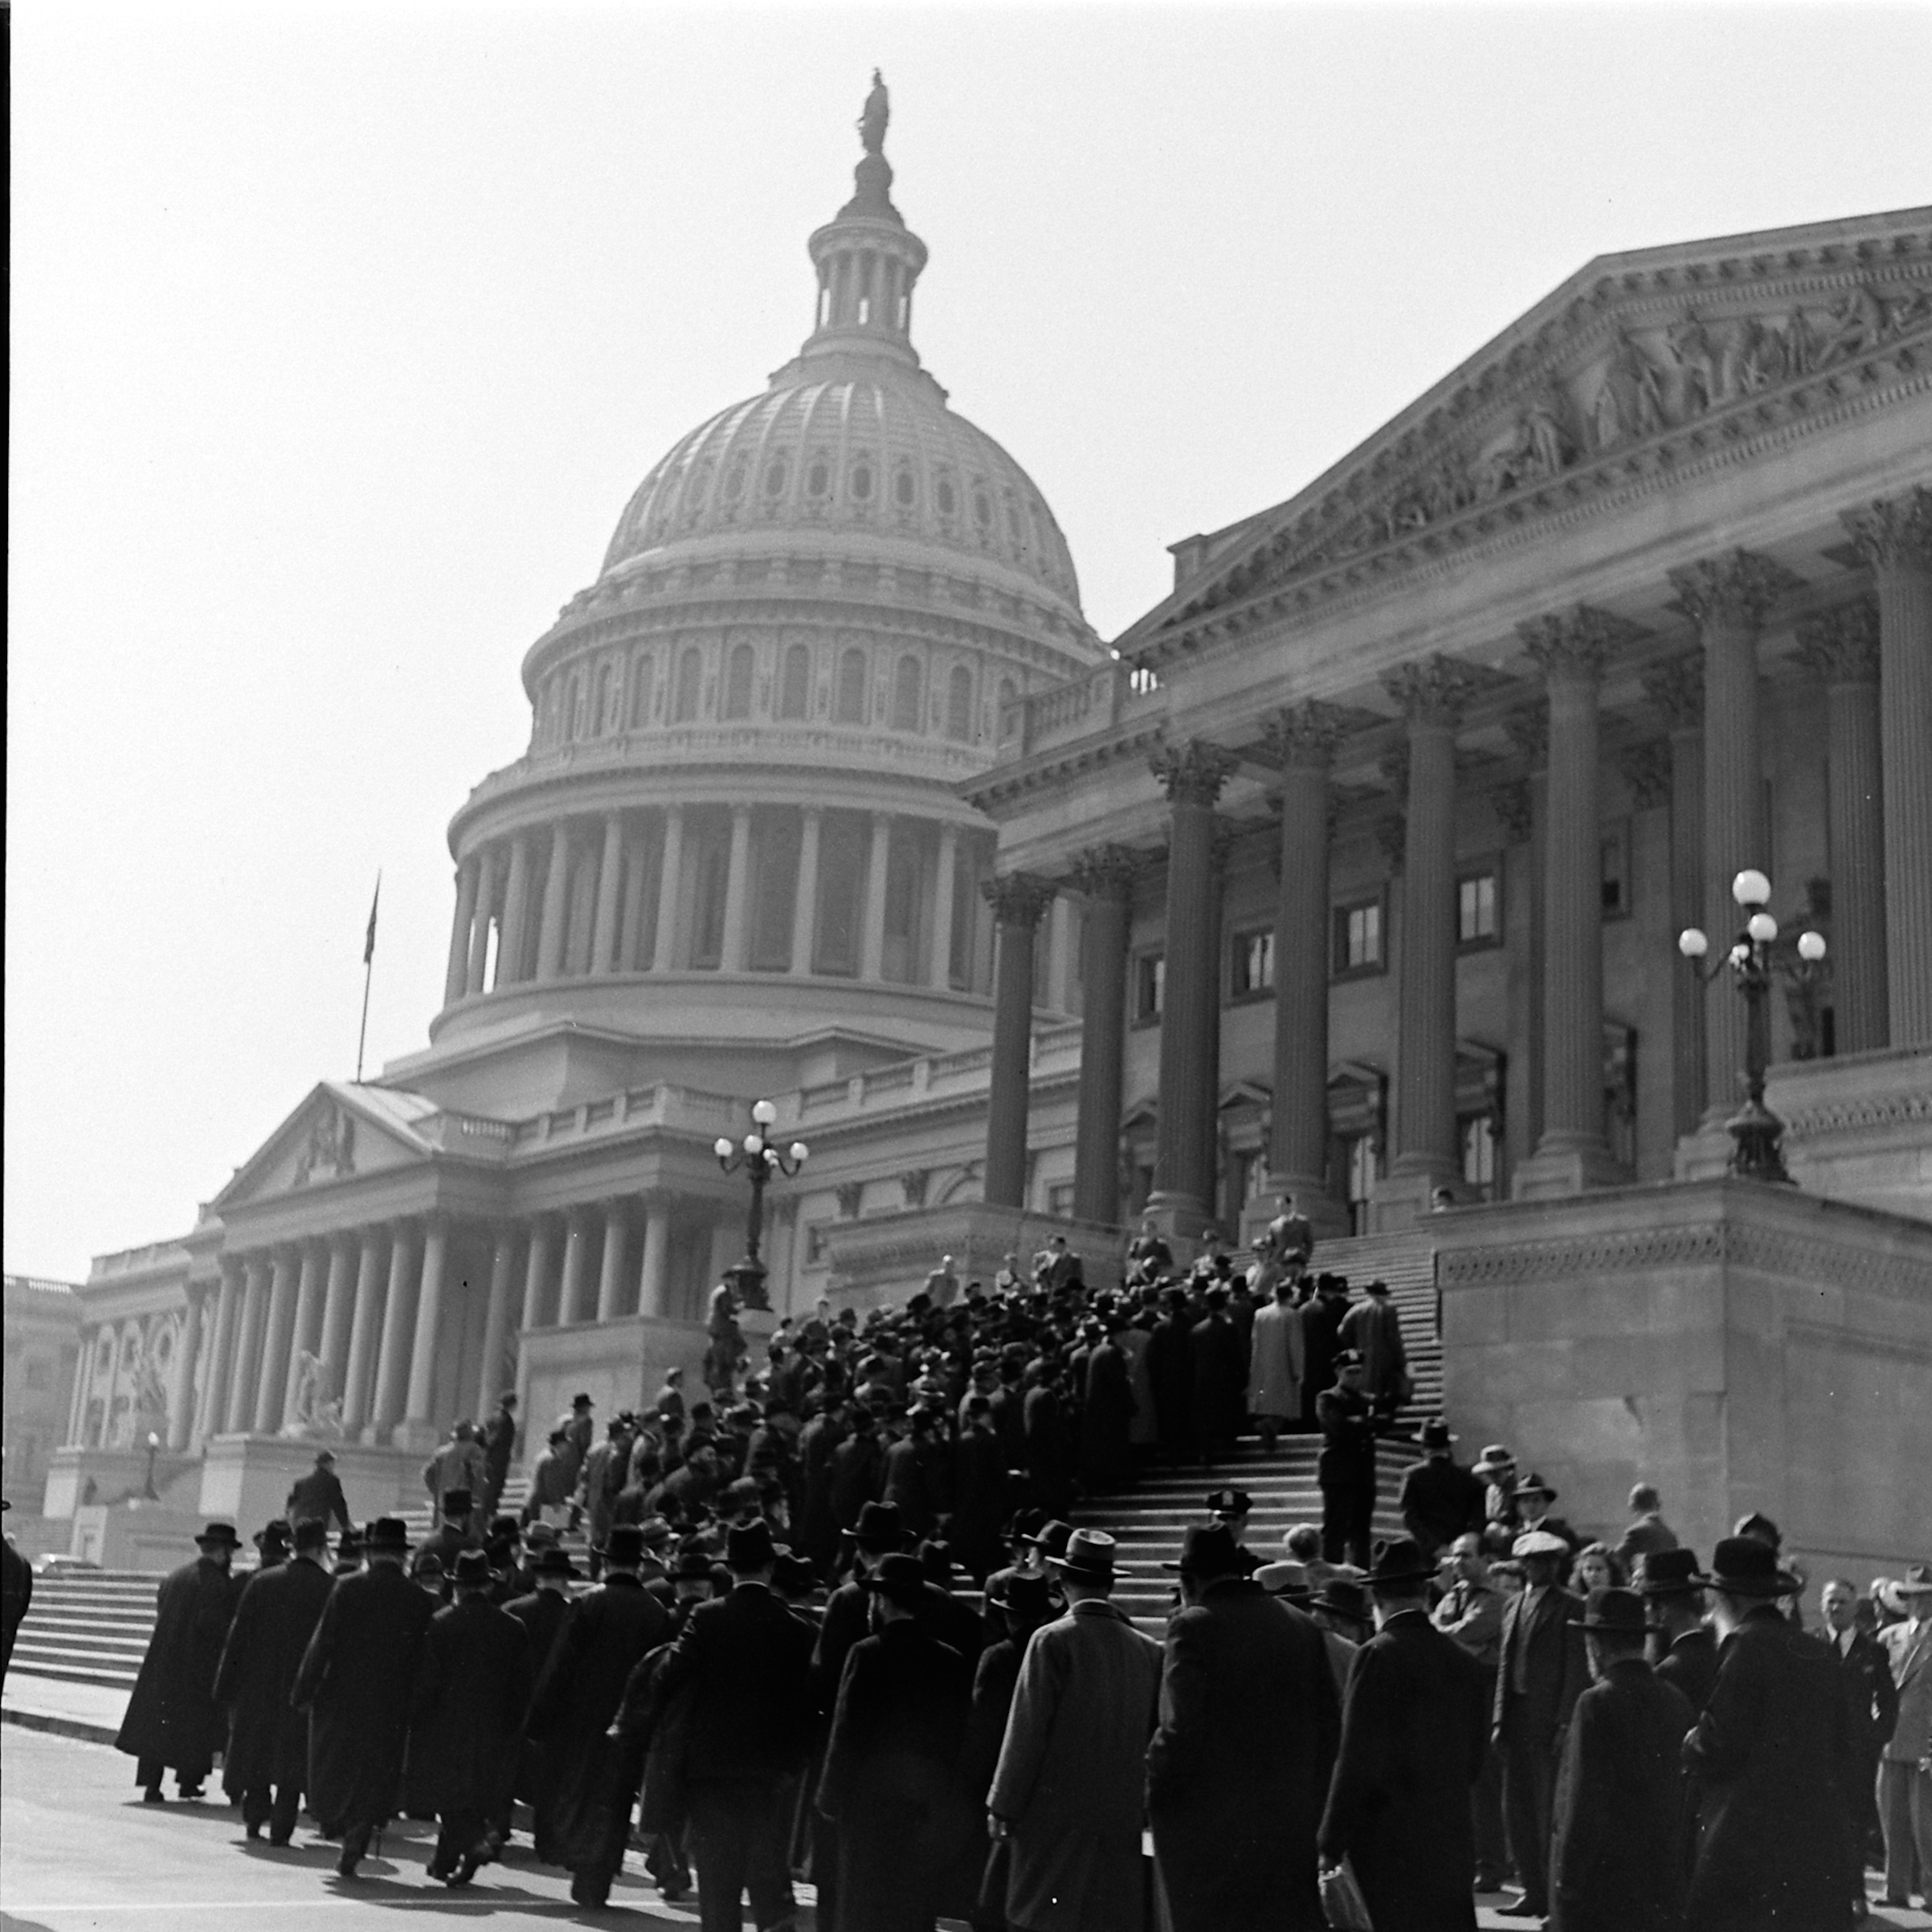 Participants in the Rabbis' March on the steps of the United States Capitol Building in Washington, D.C., on Oct. 6, 1943.